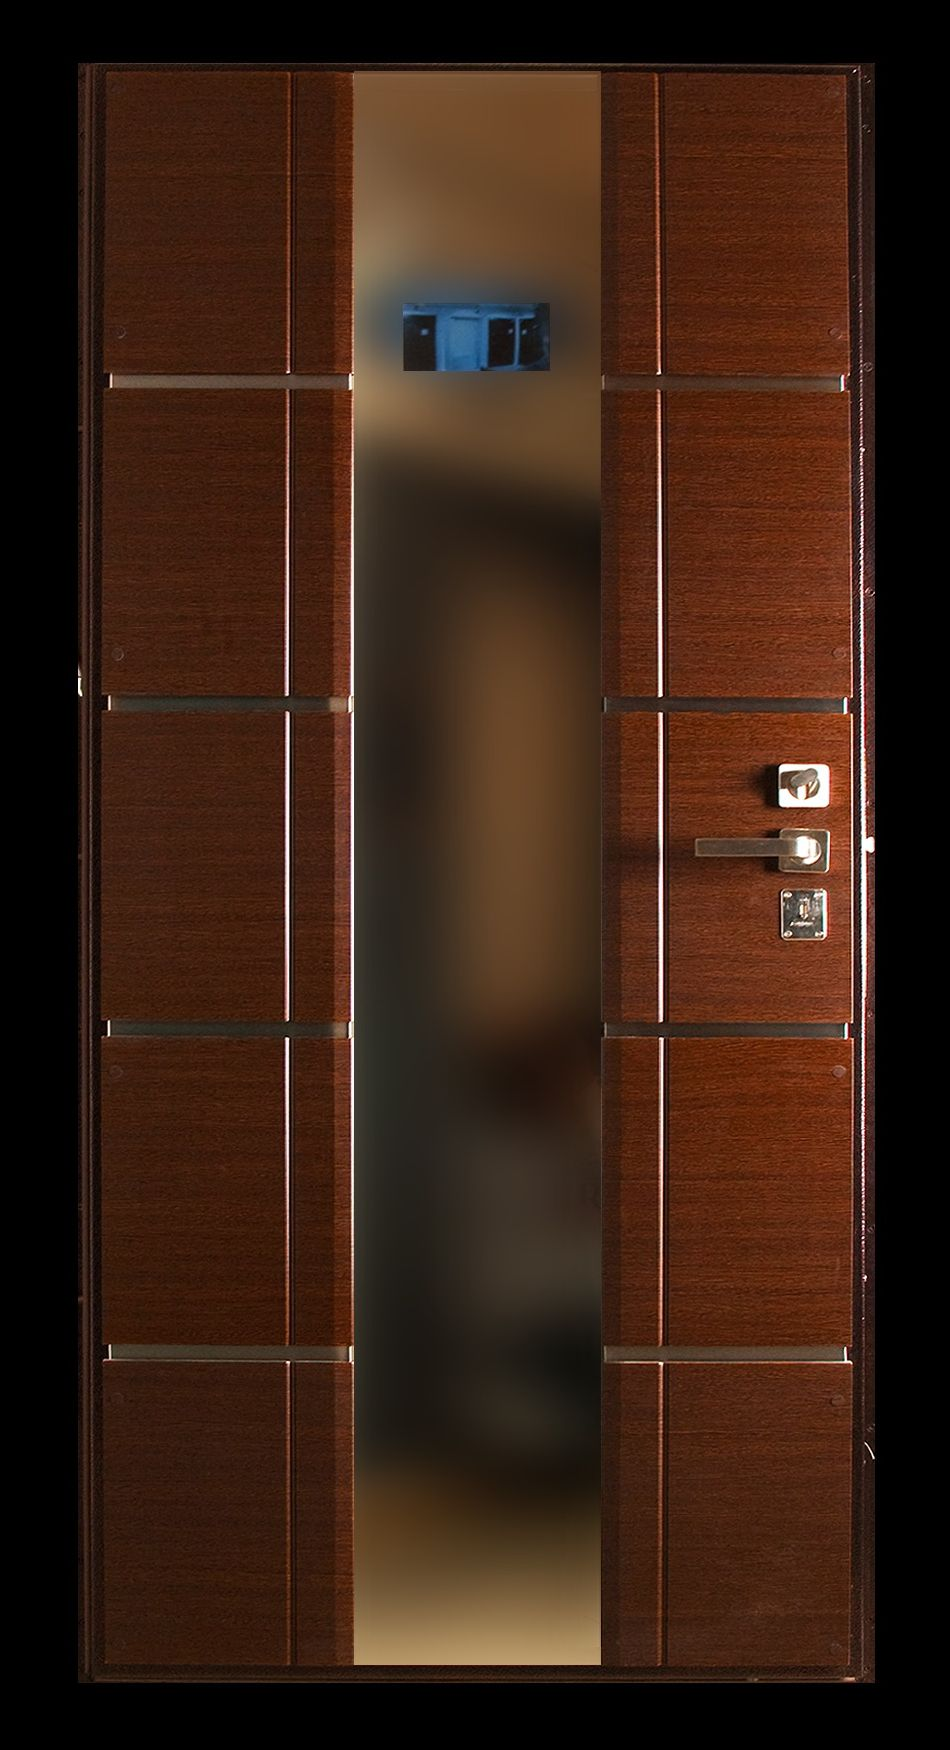 The modern door made of glass and wood in the style of hi-tech